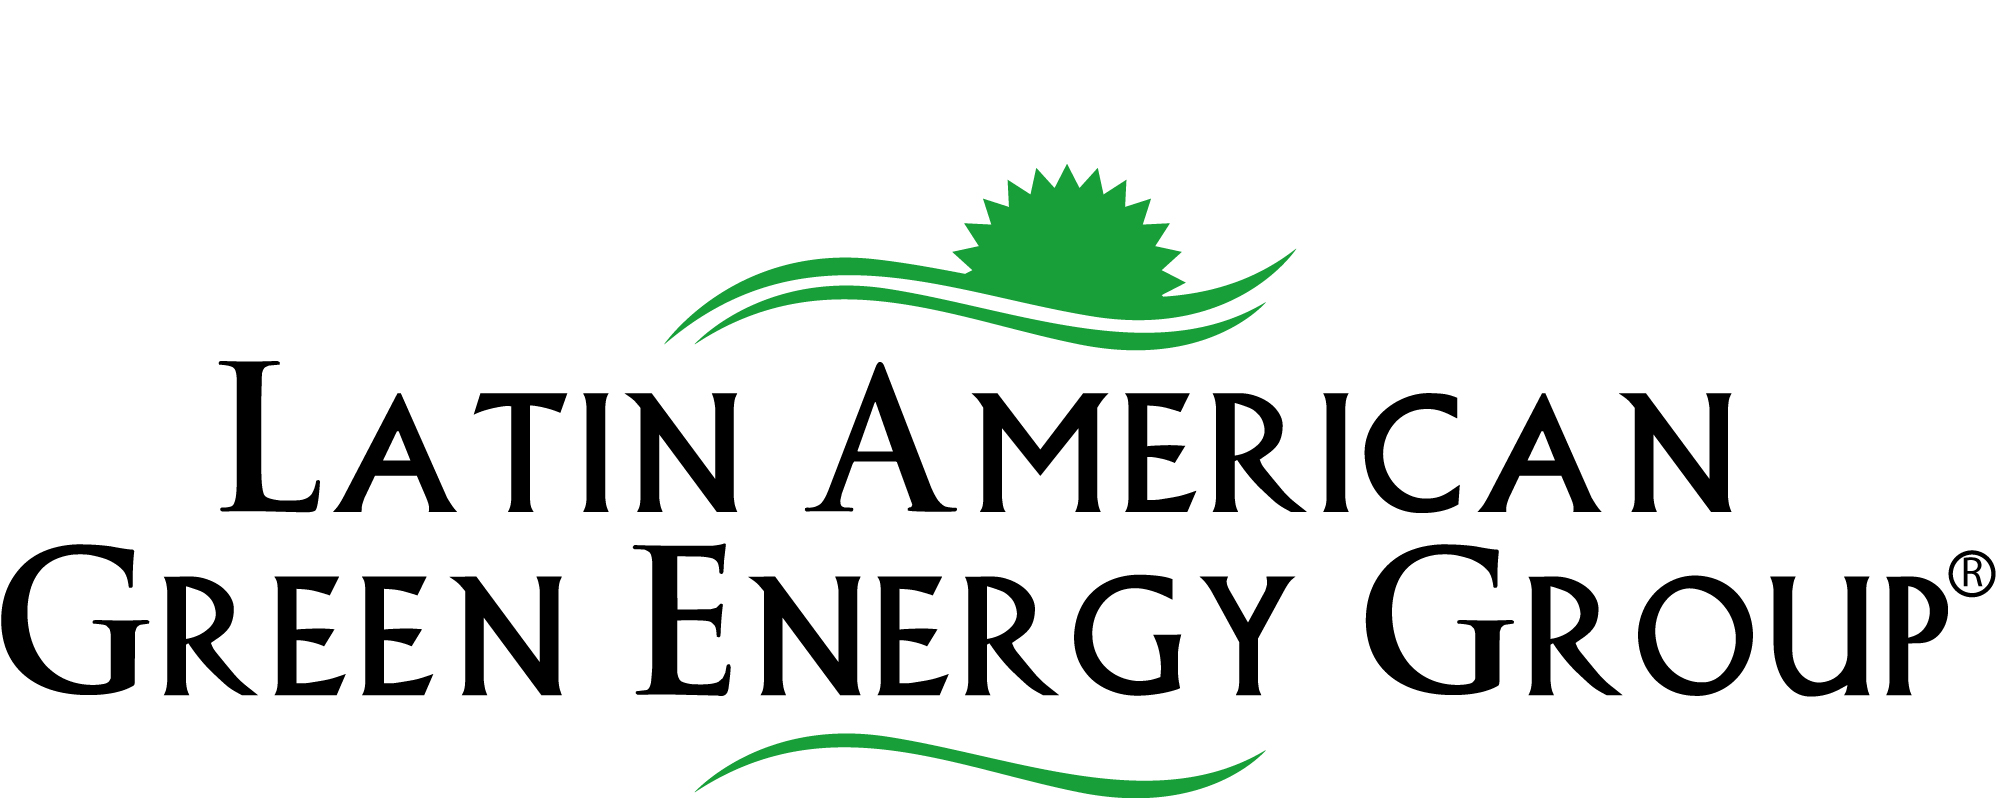 LATIN AMERICAN GREEN ENERGY GROUP